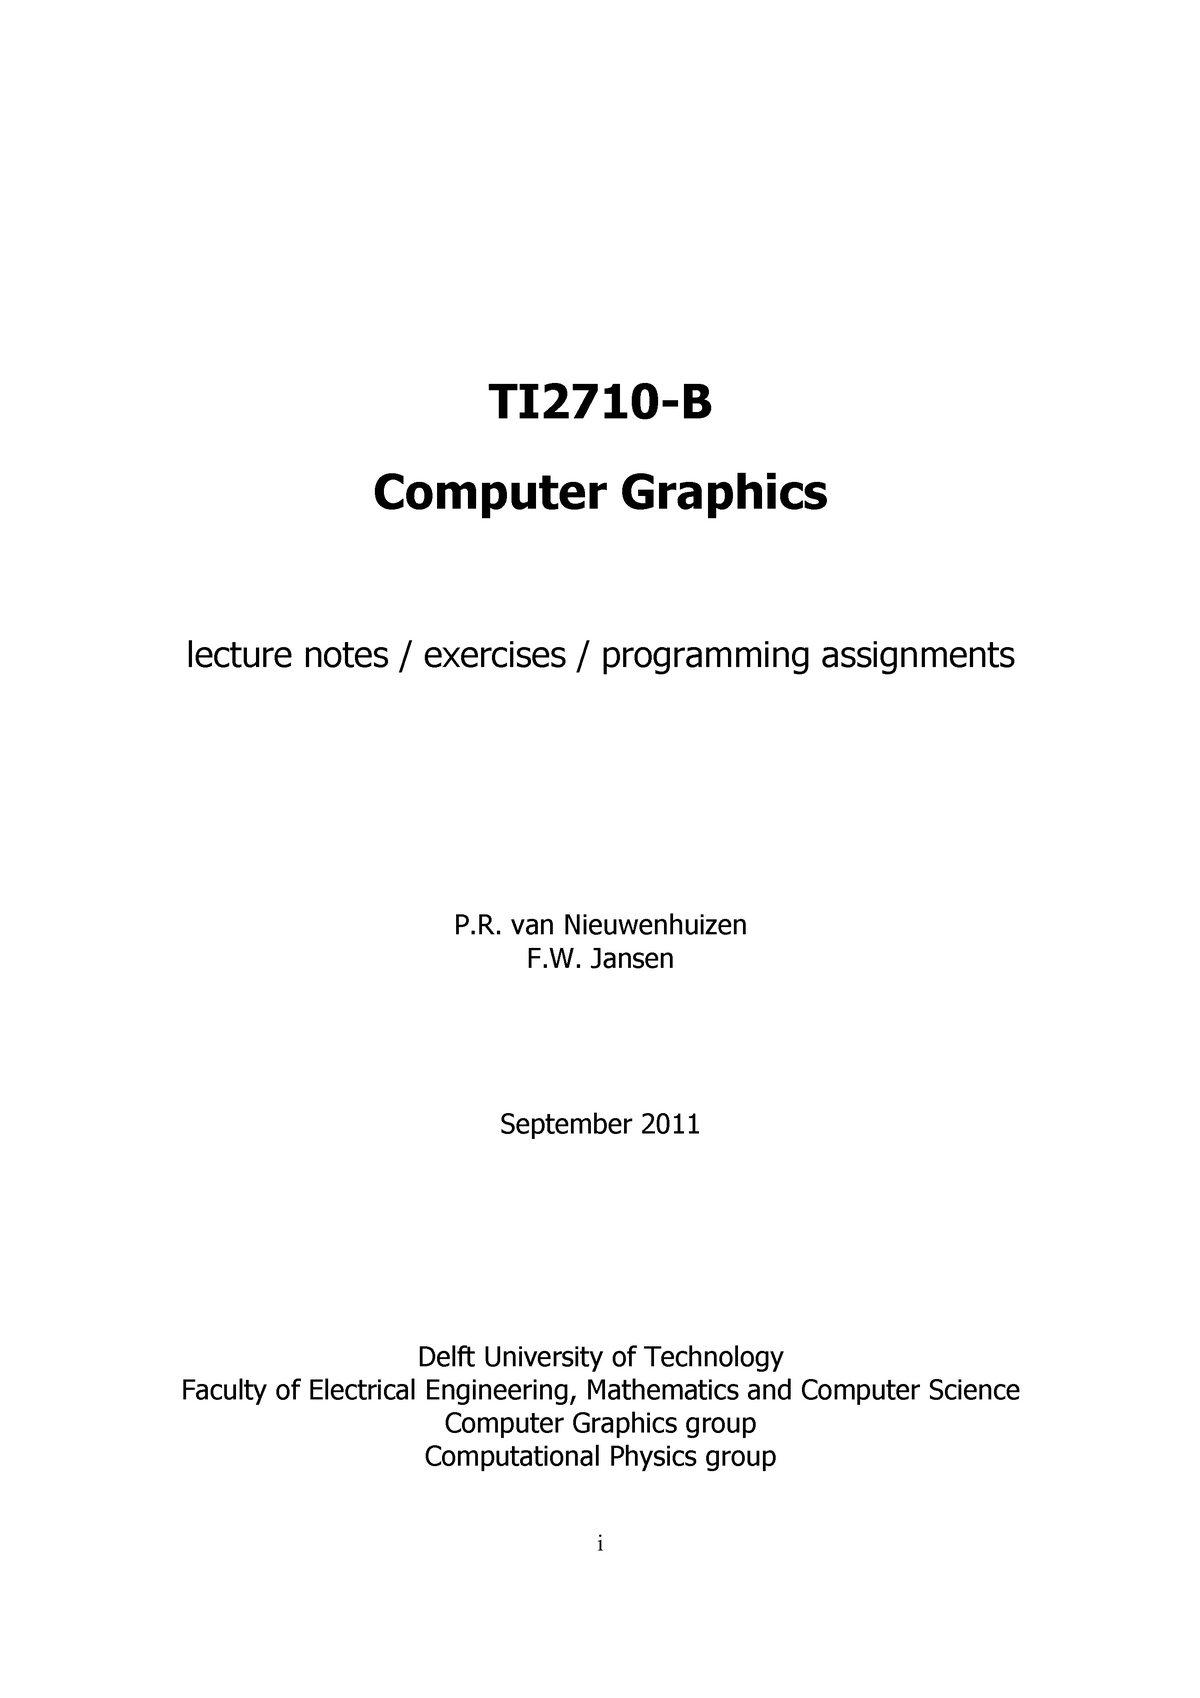 Workbook of the Computer Graphics course - TI1806: Computer